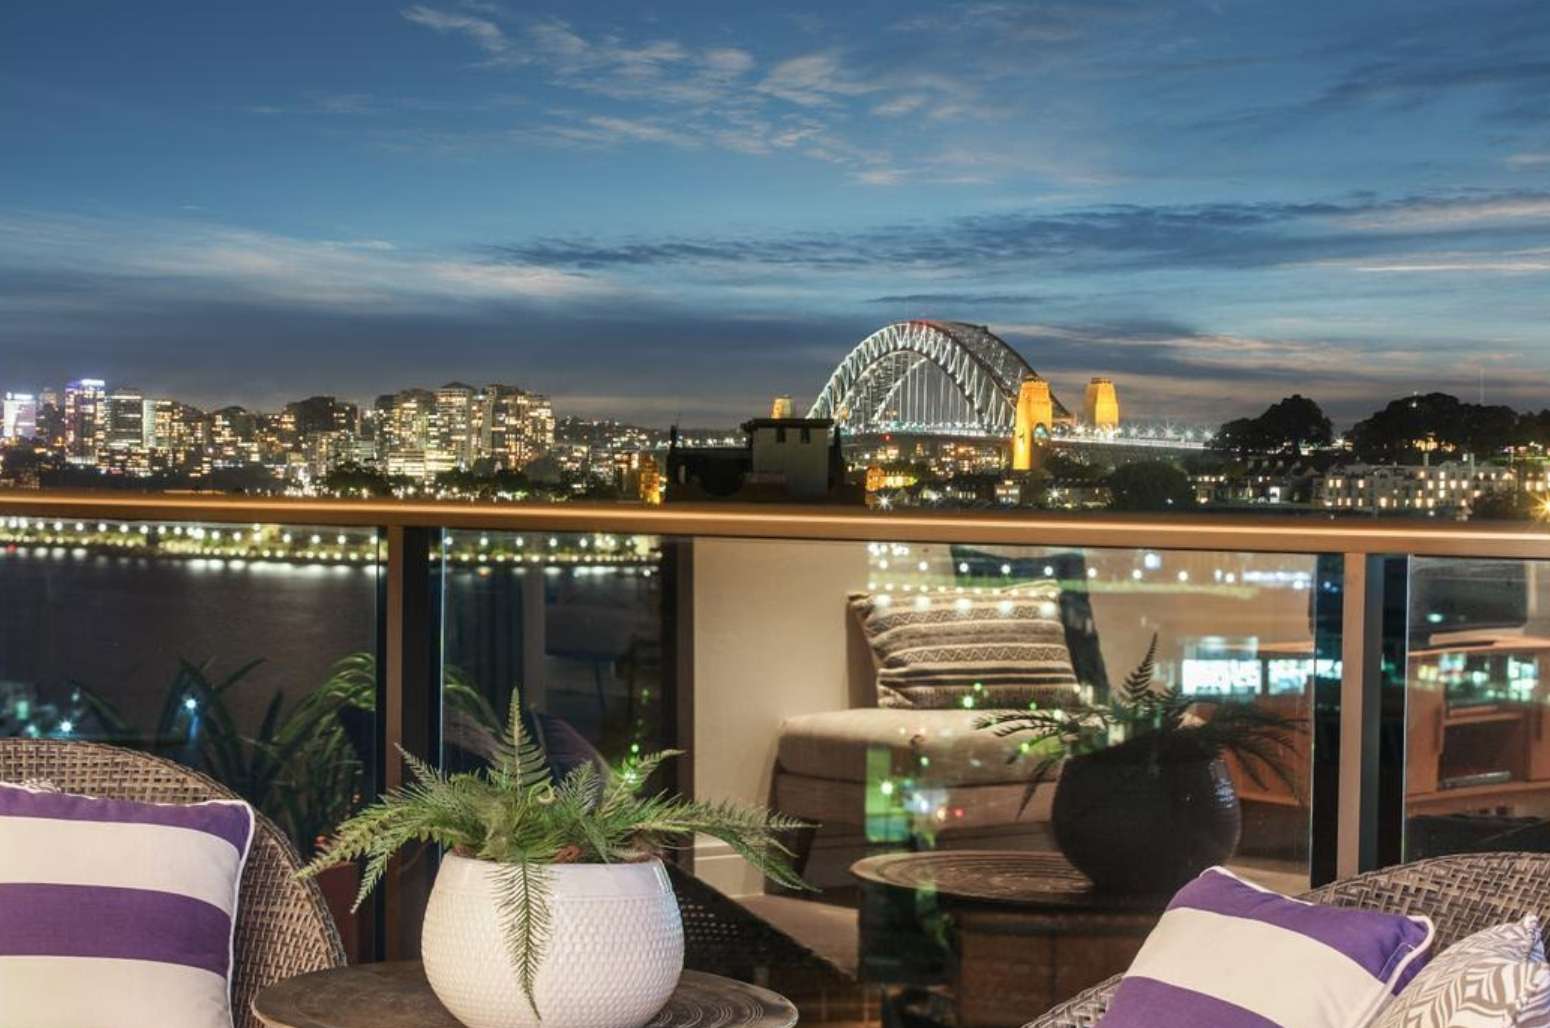 James Pratt Auction Group, Luxury Sydney Auction #sydney #views #amazing #design #inspo #realestate #city